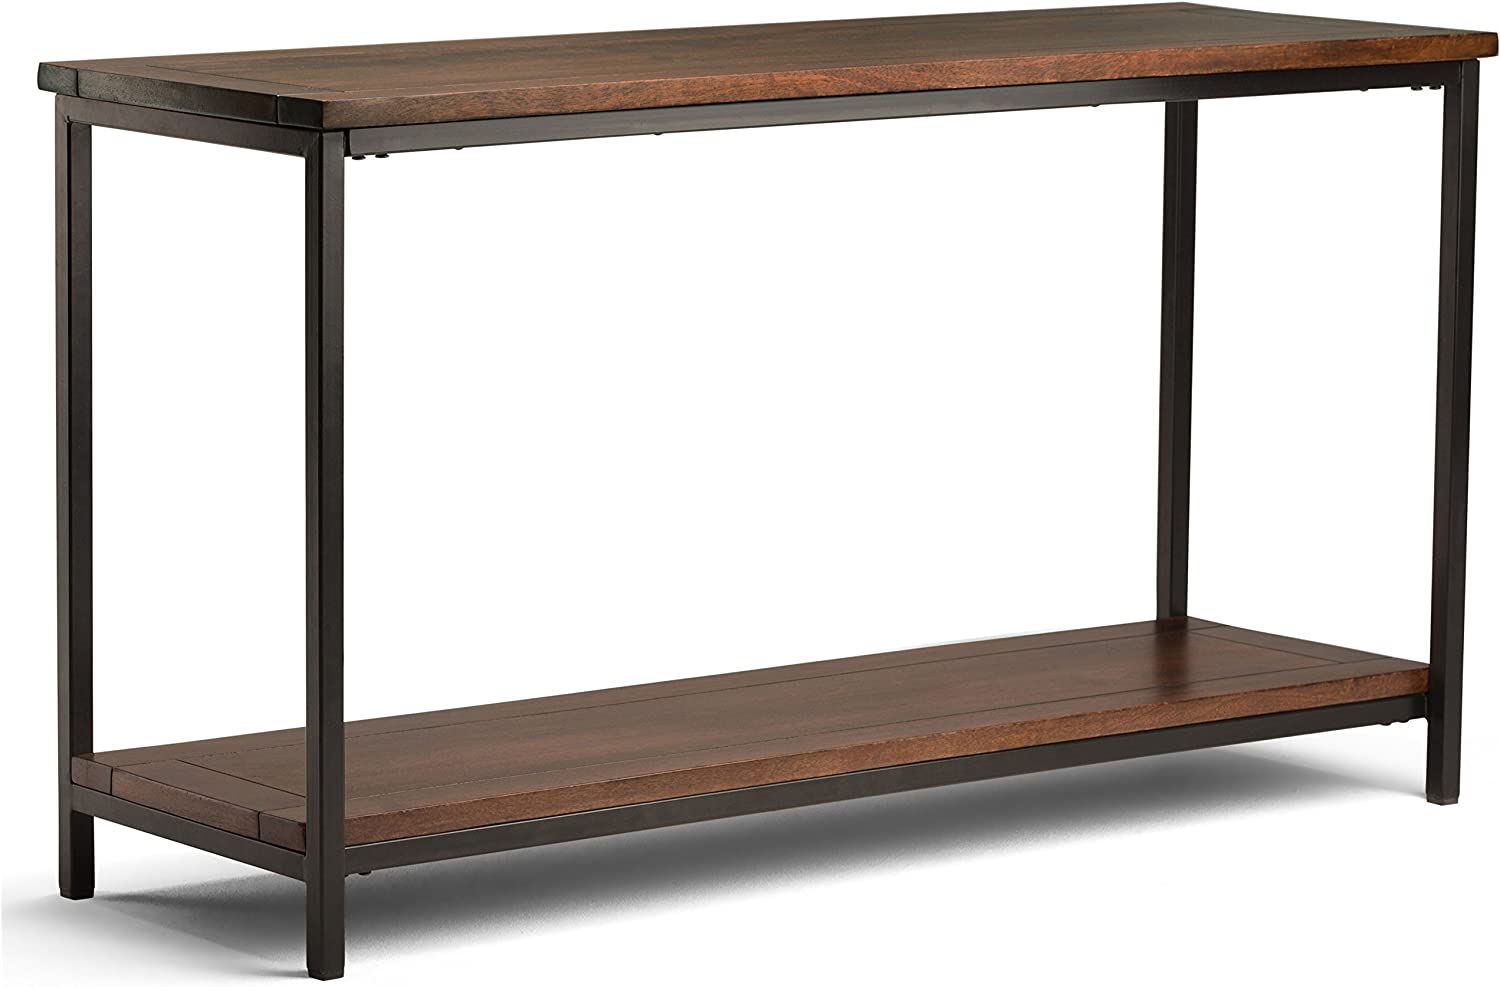 Simplihome Skyler Solid Wood And Metal 54 Inch Wide Modern Industrial Console Sofa Entryway Table In Dark Cognac Brown With Storage 1 Shelf For The Living Room Entryway And Bedroom Furniture